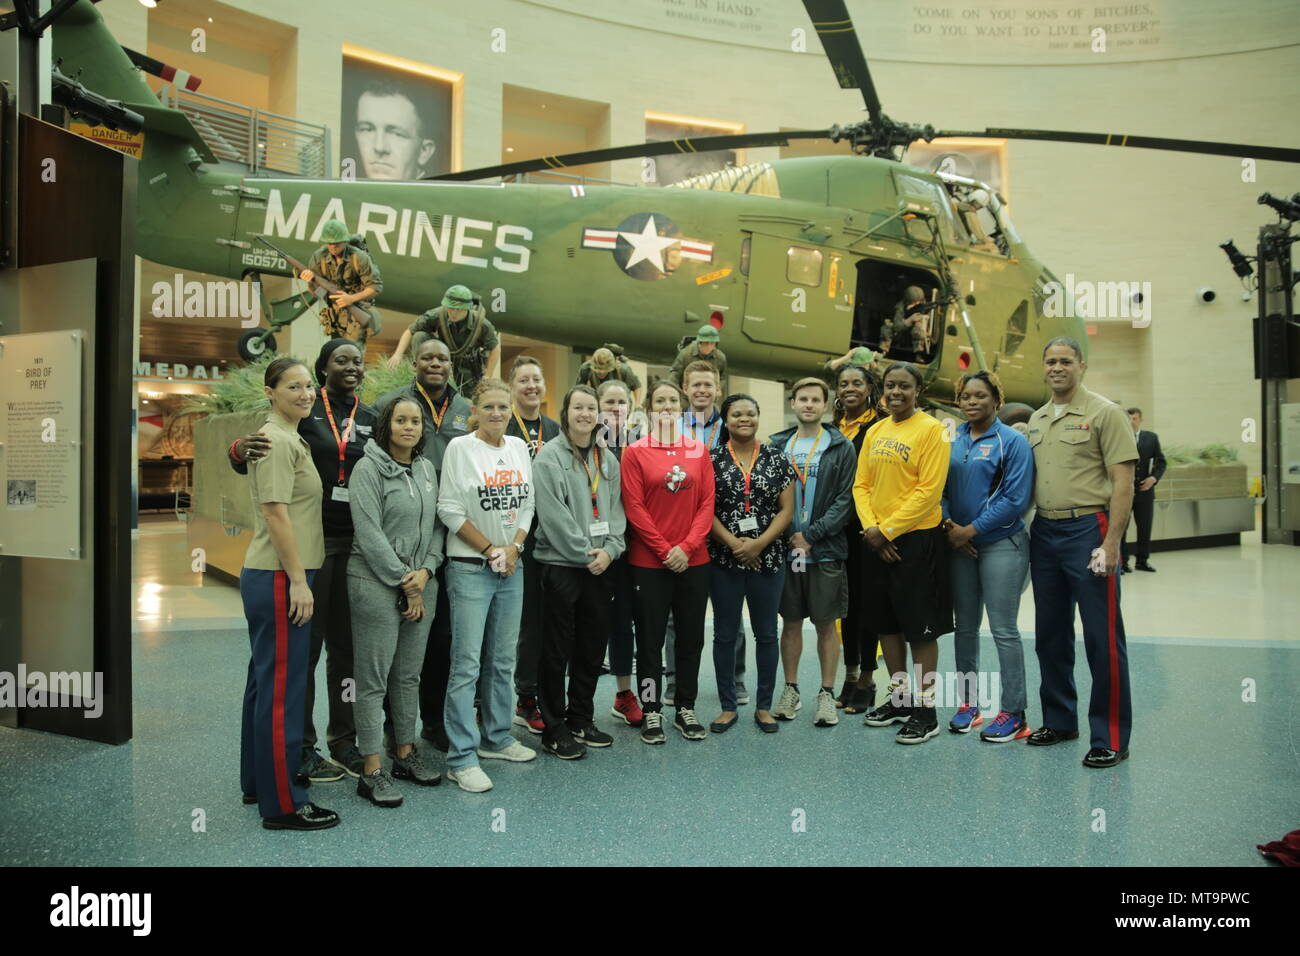 Members of the Women's Basketball Coaches Association (WBCA) and Marines pose for a group photo during a Marine Corps Recruiting Command's 2018 Coaches Workshop in Triangle, Virginia, May 19. The Coaches Workshop educates approximately 50 collegiate coaches from across the nation about essential Marine Corps leadership skills and programs that they can share with their student athletes based on first-hand experiences. WBCA is an organization that helps grow women's basketball by providing educational programs, network opportunities, news, legislative and rule updates, and acting as the collect - Stock Image